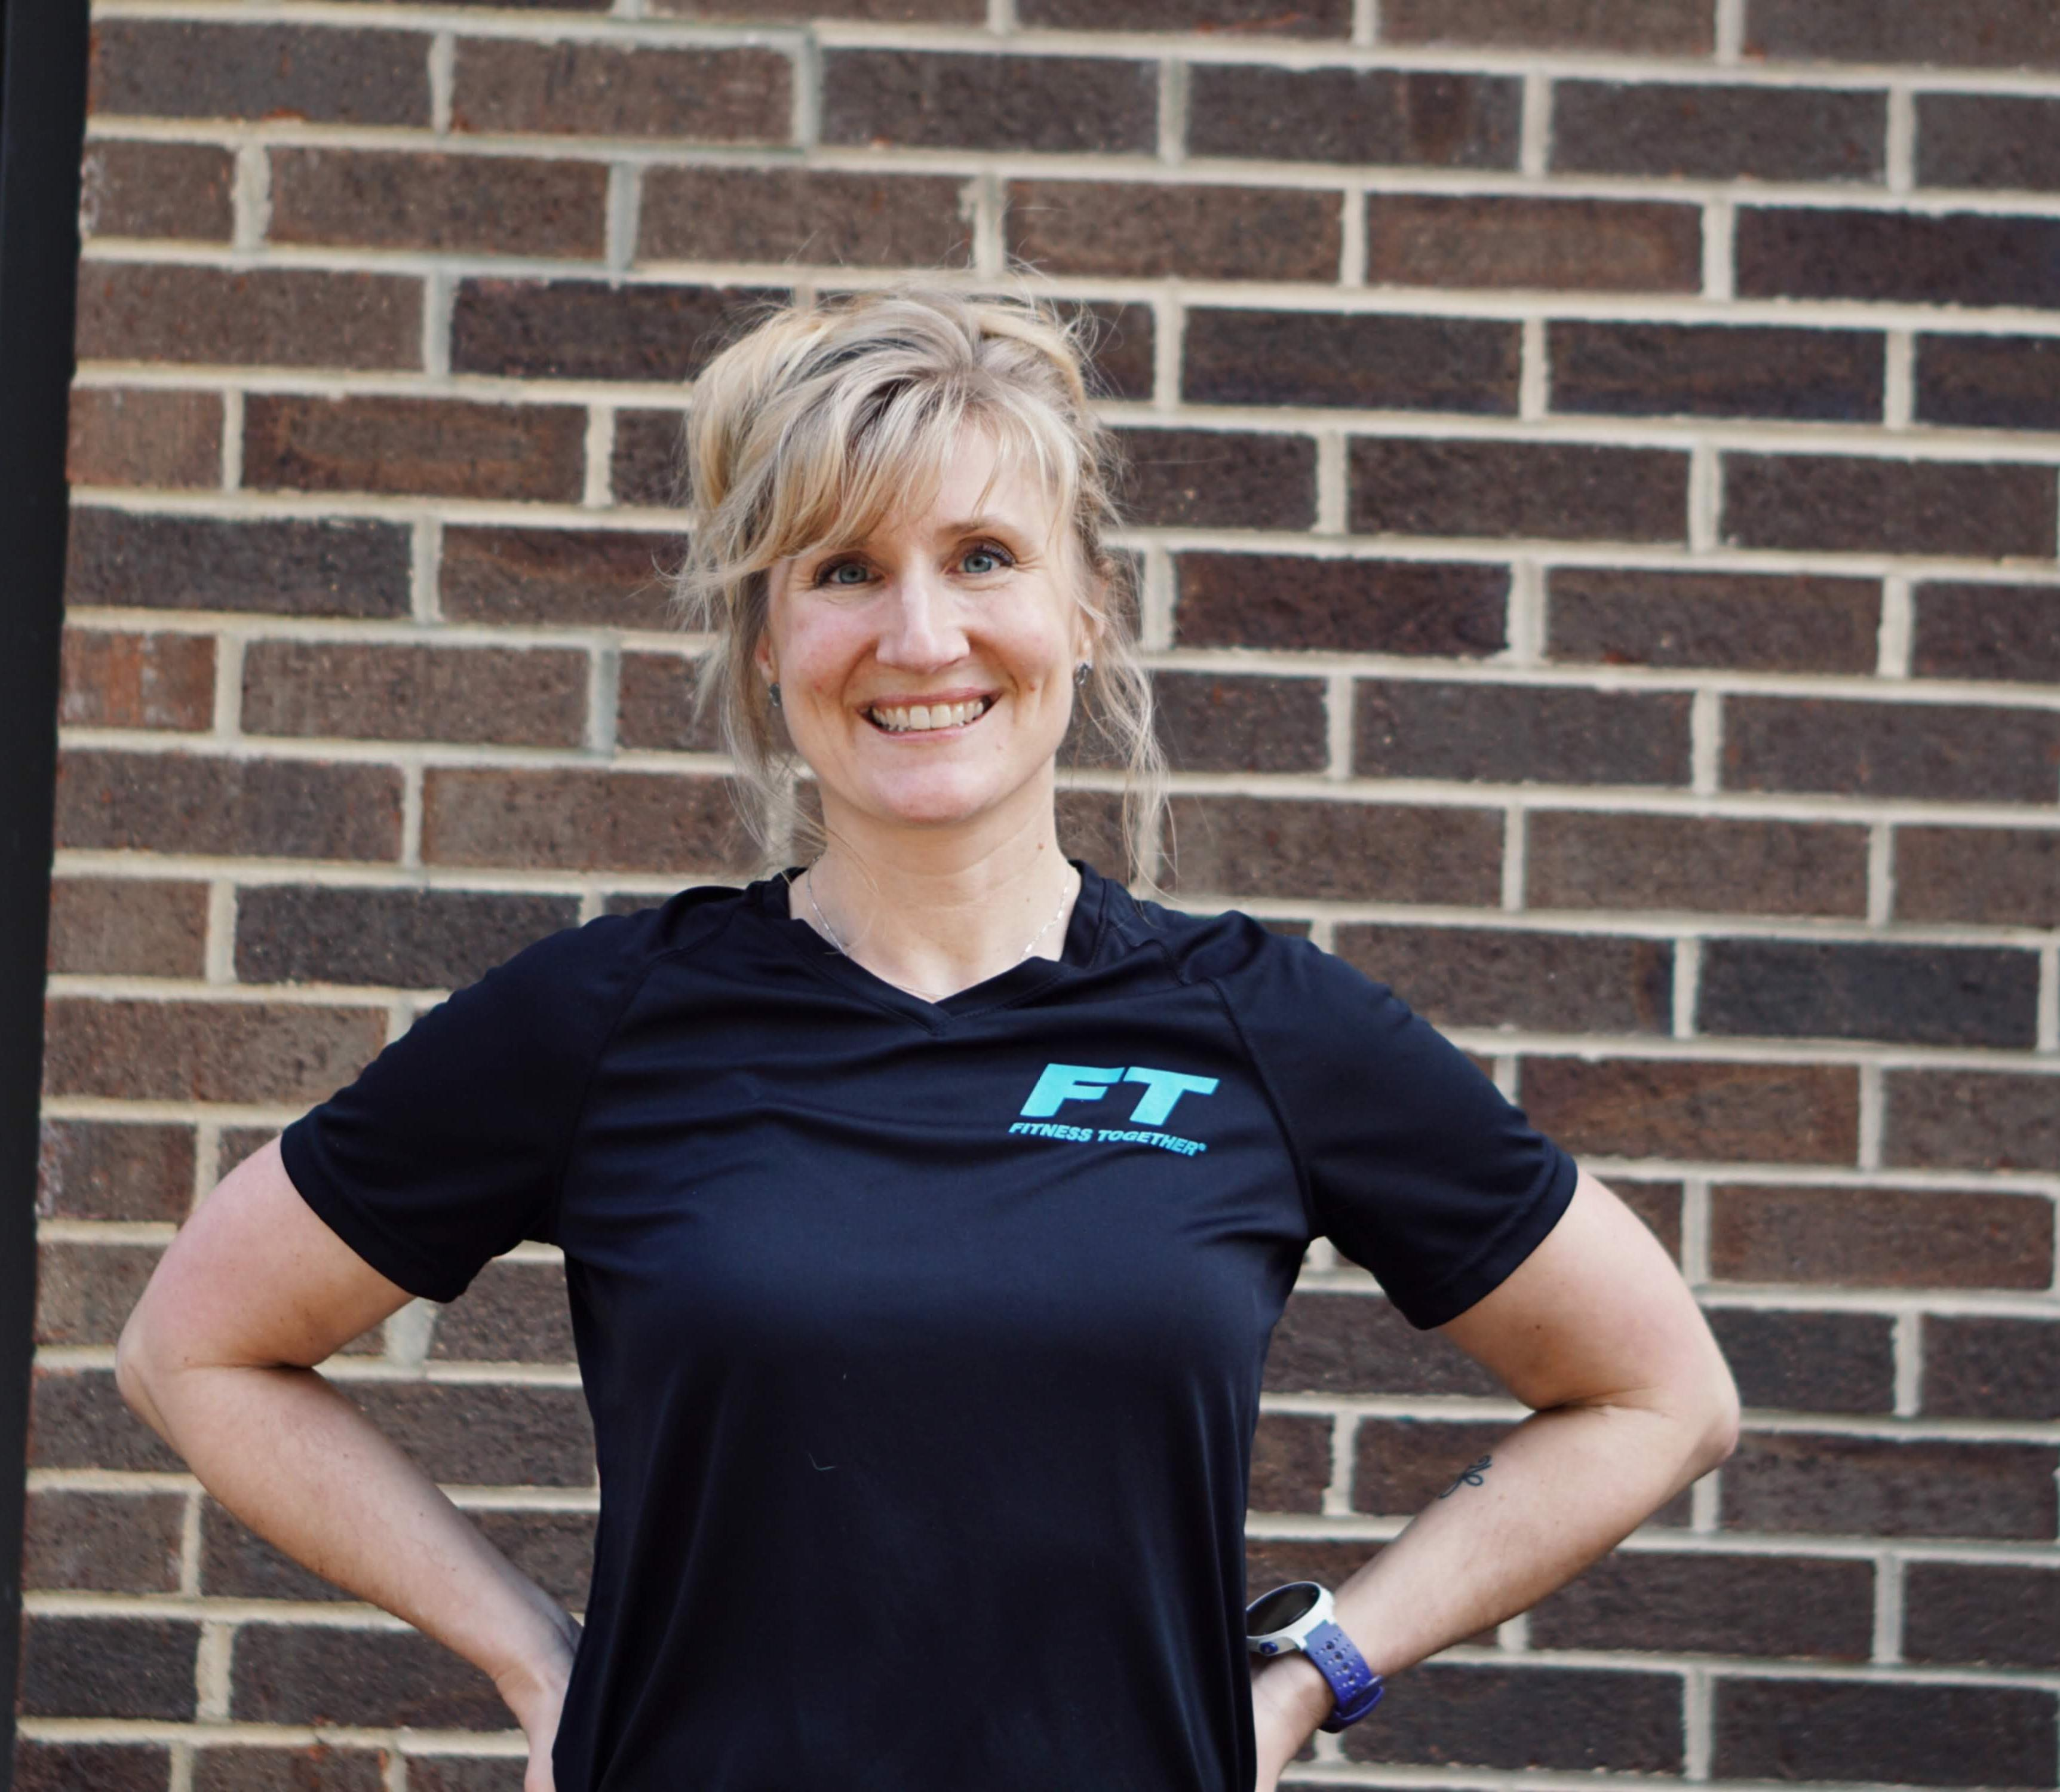 fitness together Fairfax owner